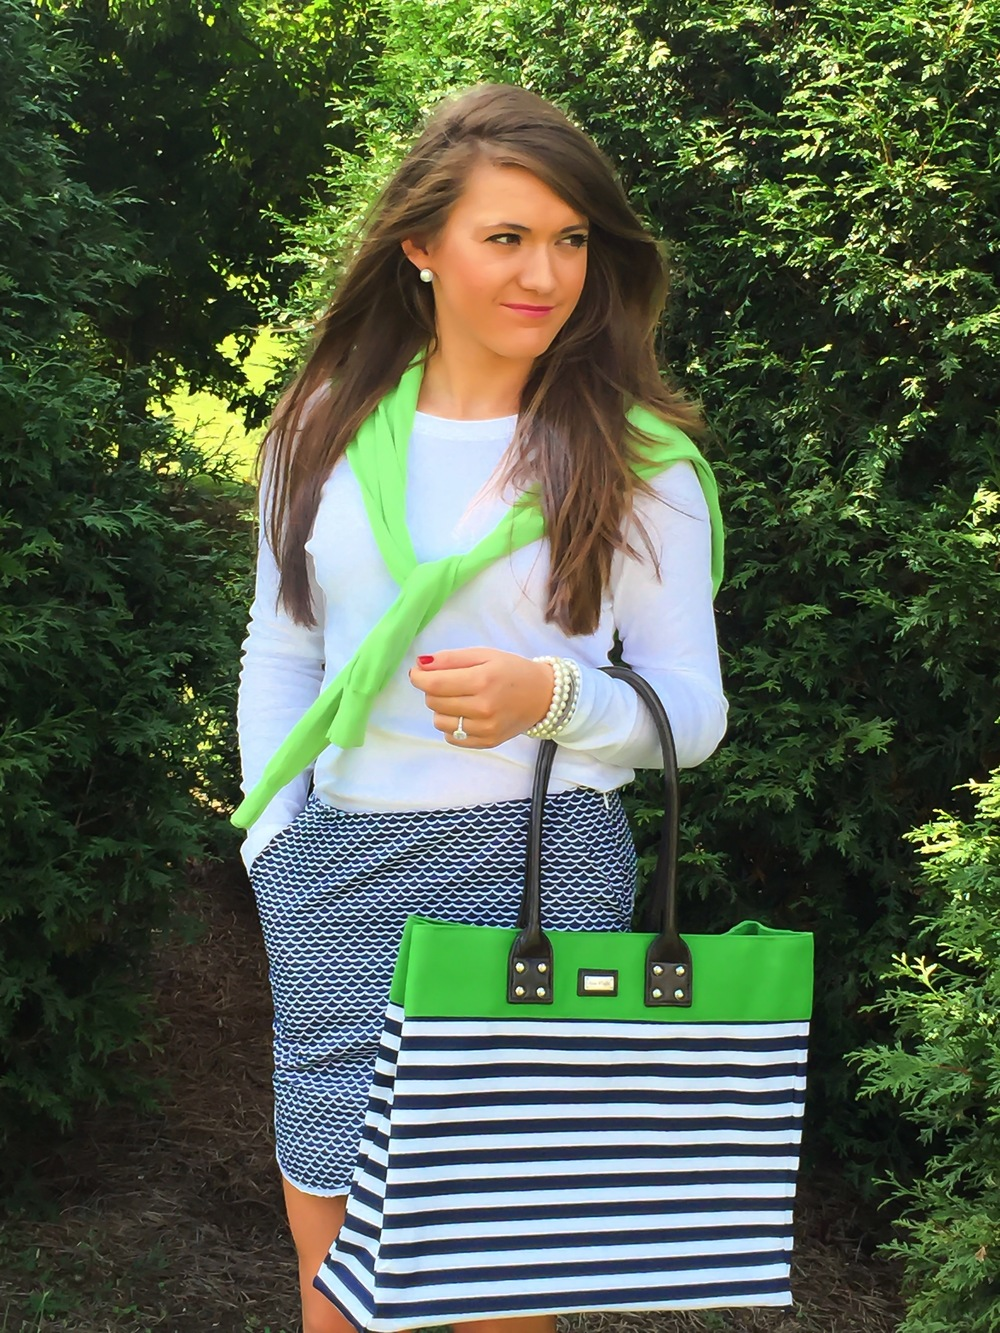 Ame and Lulu Shopper Tote in Piper, paired with Newport Skort and bright green cardigan.